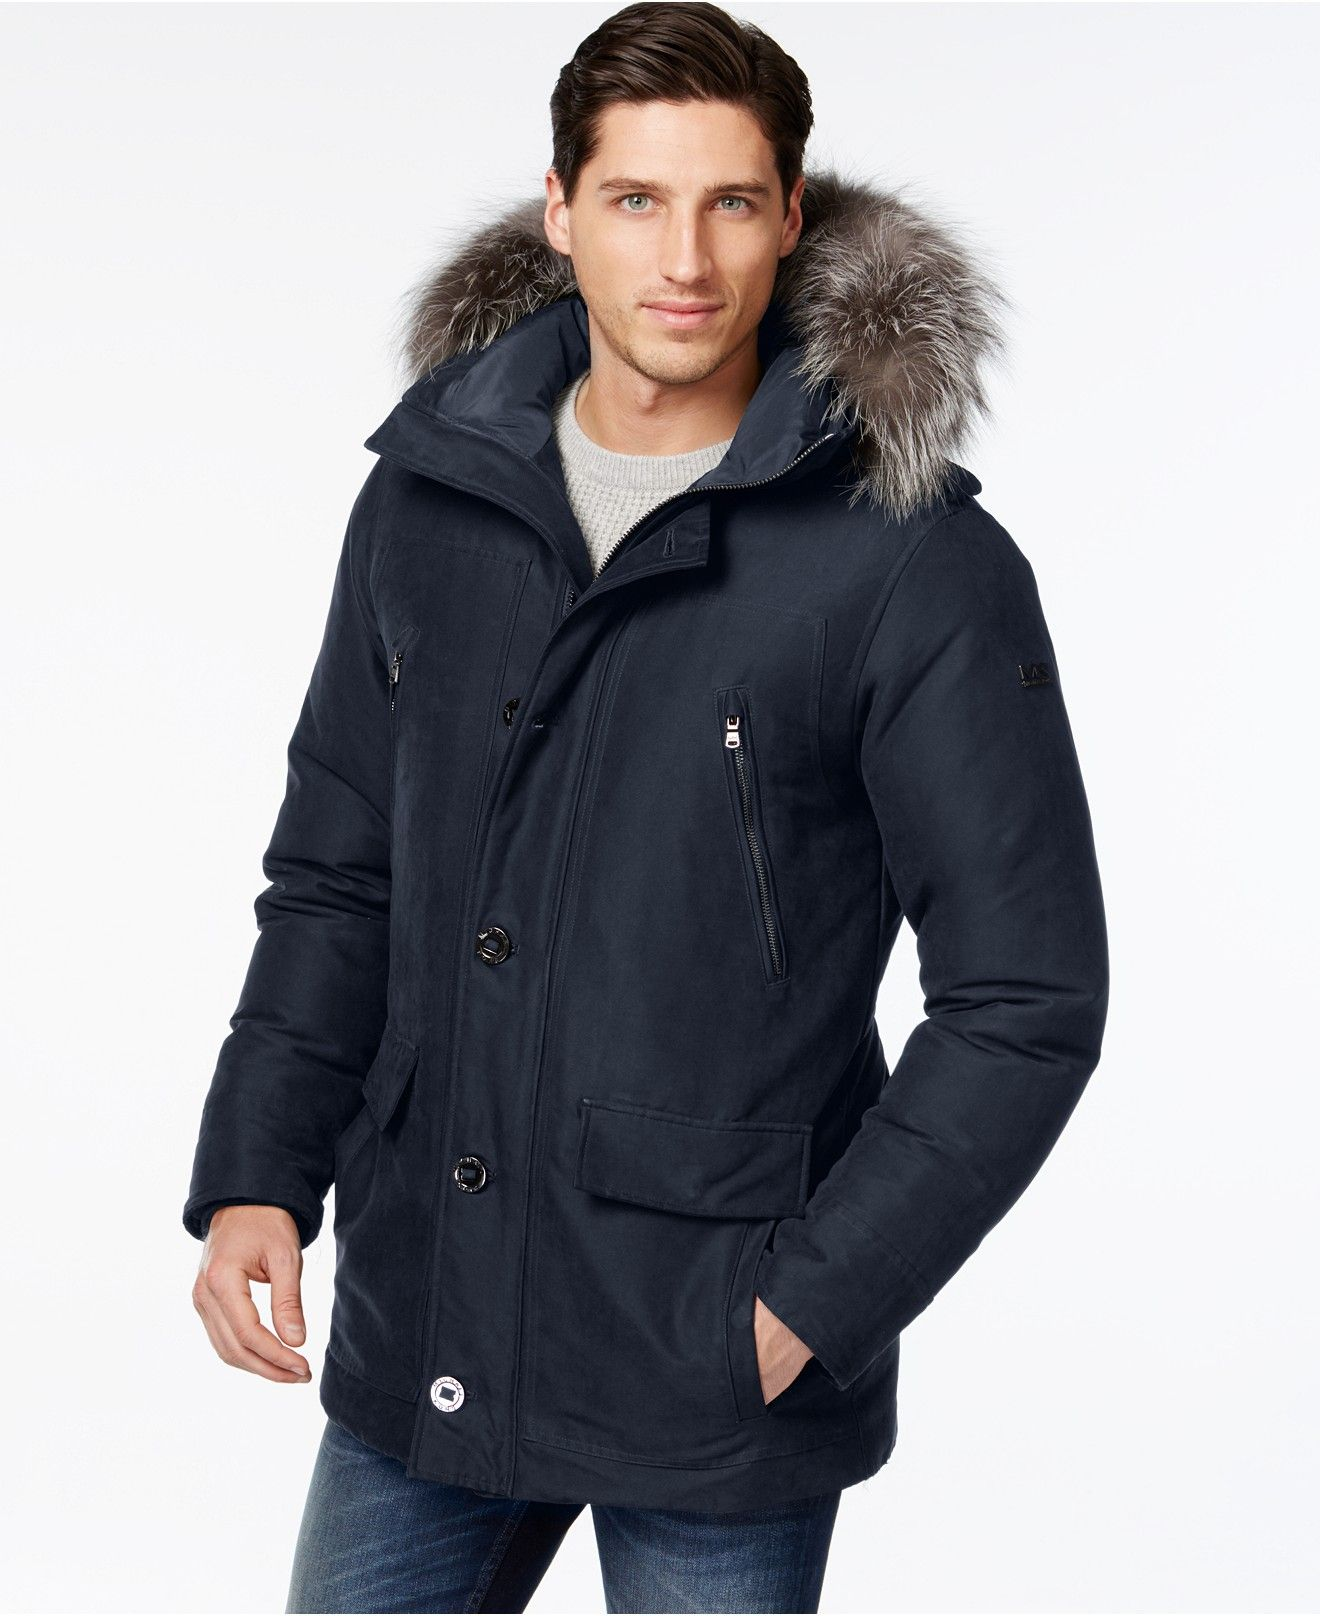 7c7ac895ae7 Michael Kors Fur-Trim Arctic Parka - Coats   Jackets - Men - Macy s ...